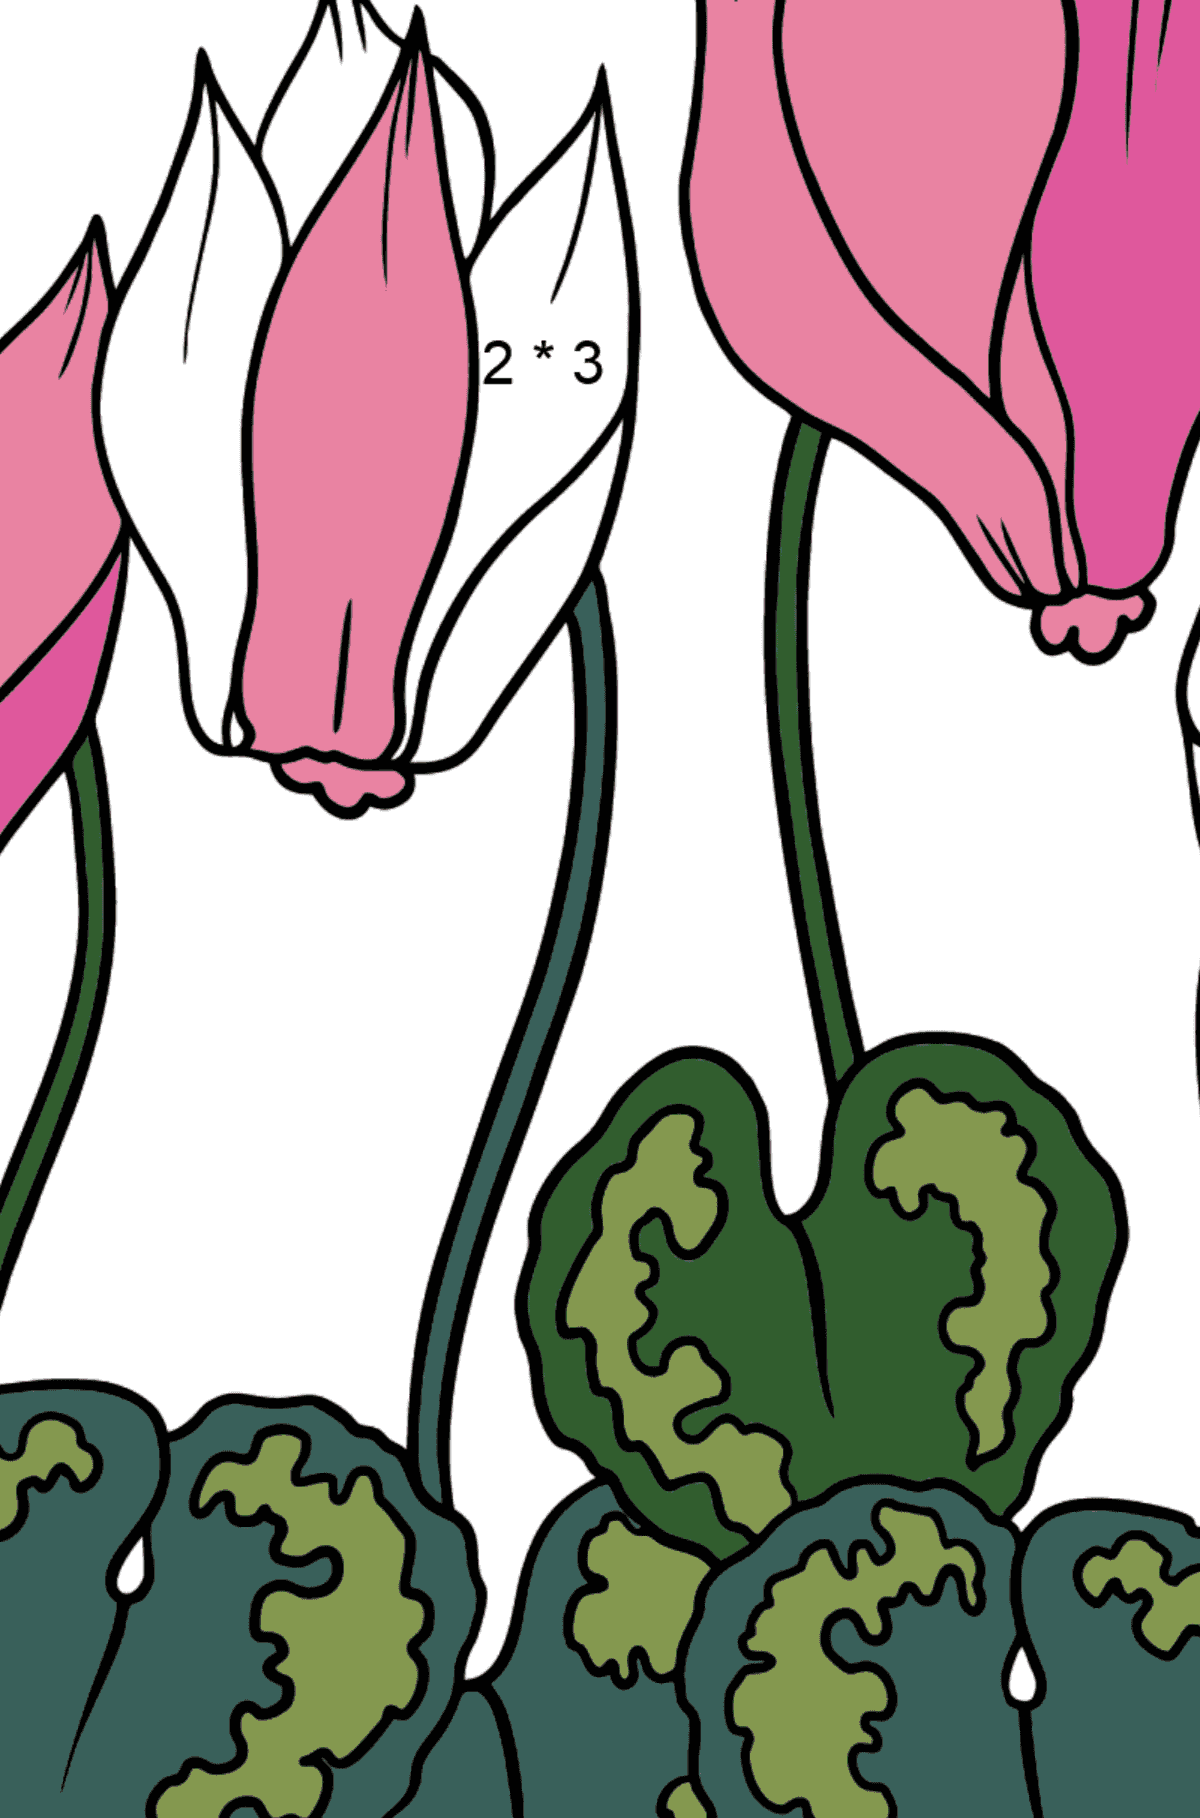 Flower Coloring Page - A Bright Pink Cyclamen - Math Coloring - Multiplication for Kids